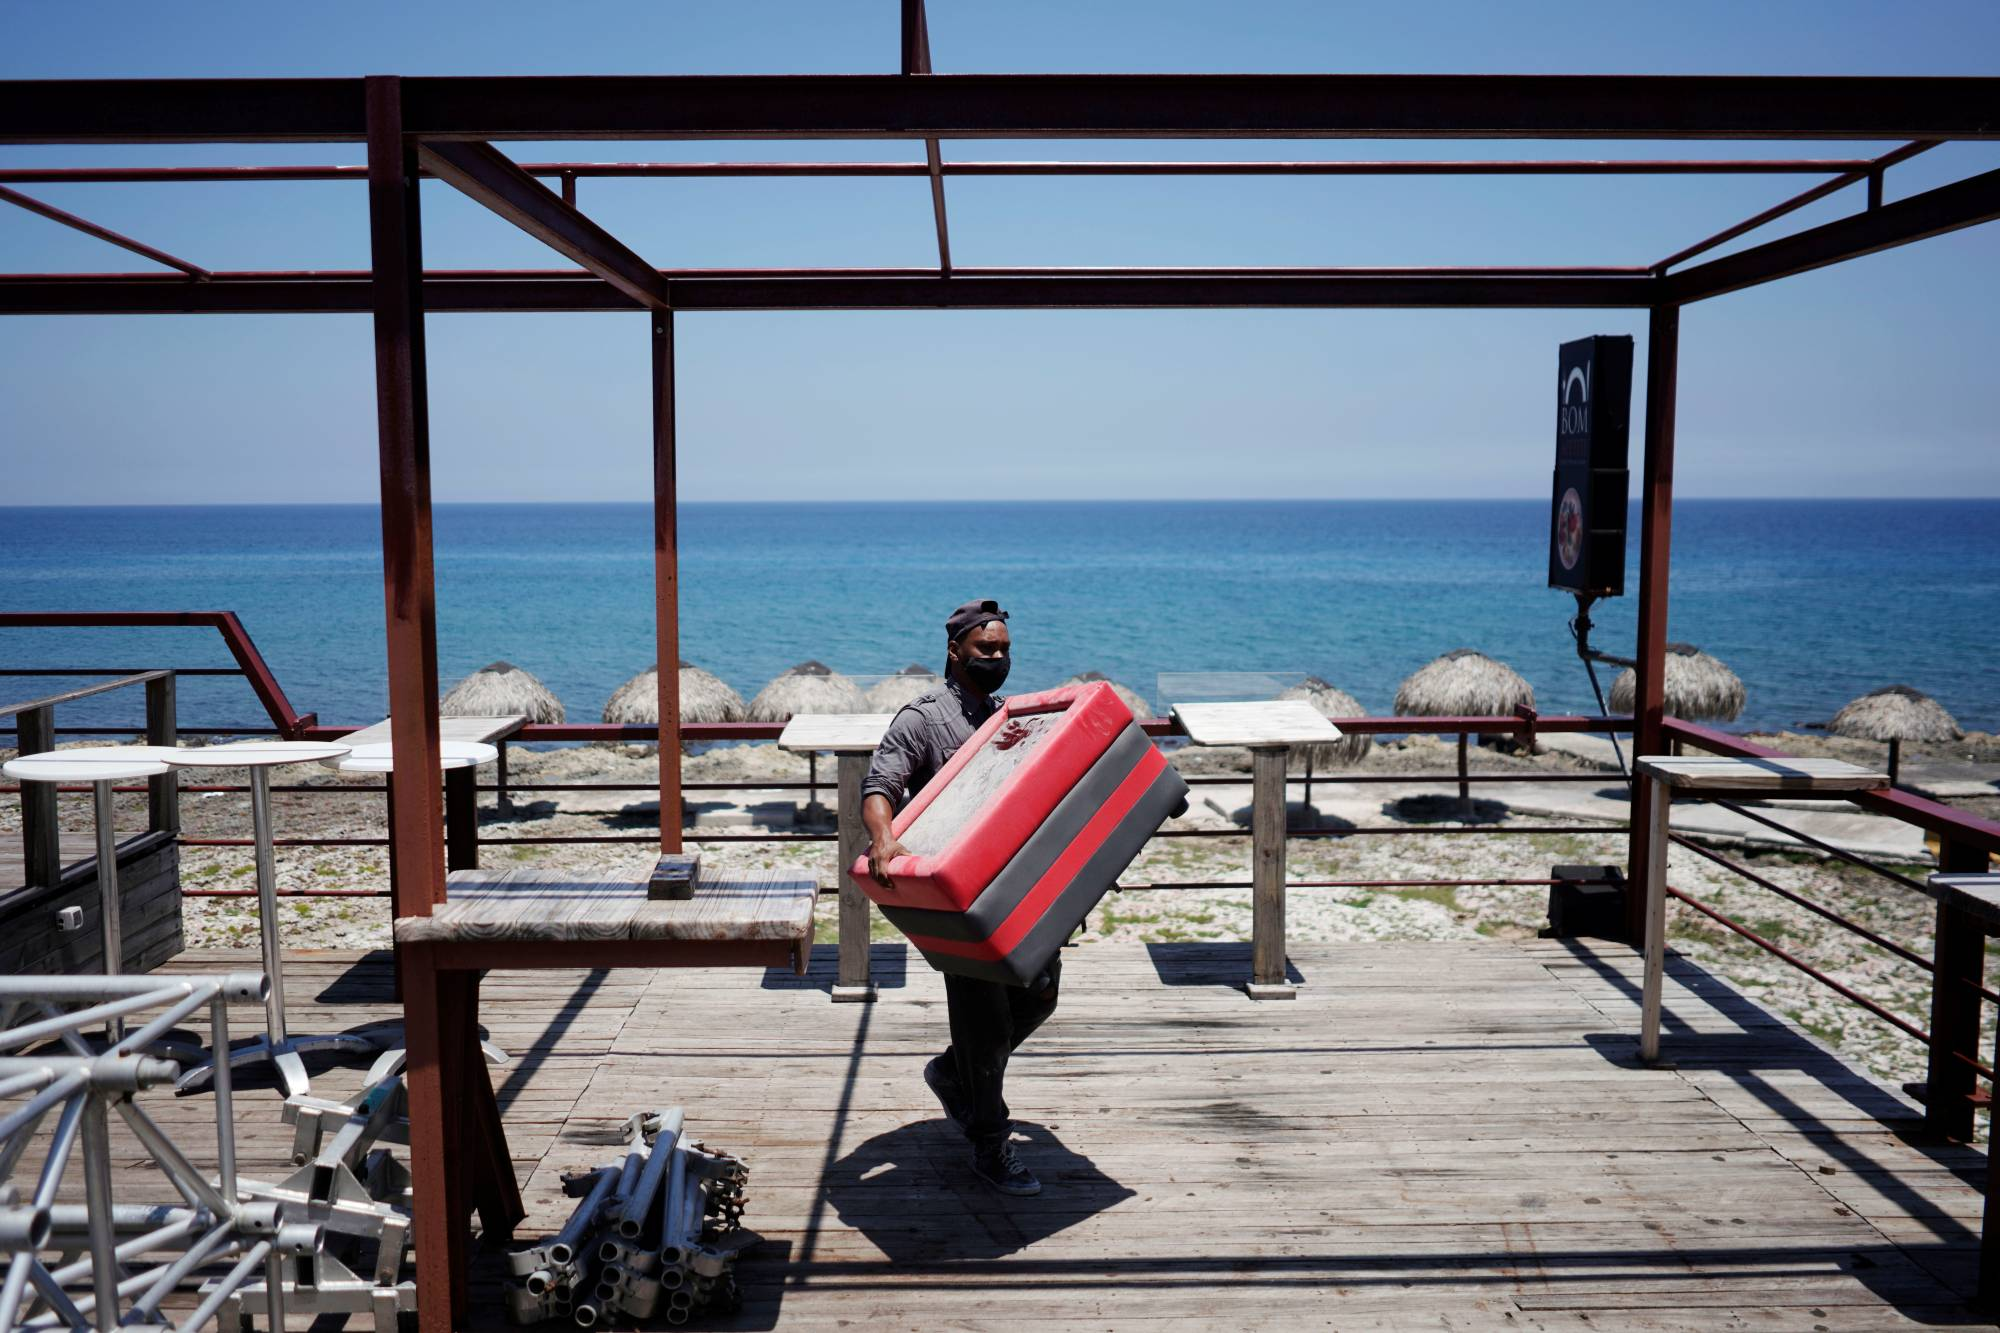 A worker removes furniture from a restaurant terrace as Storm Elsa approaches the island, in Havana on Saturday.    REUTERS